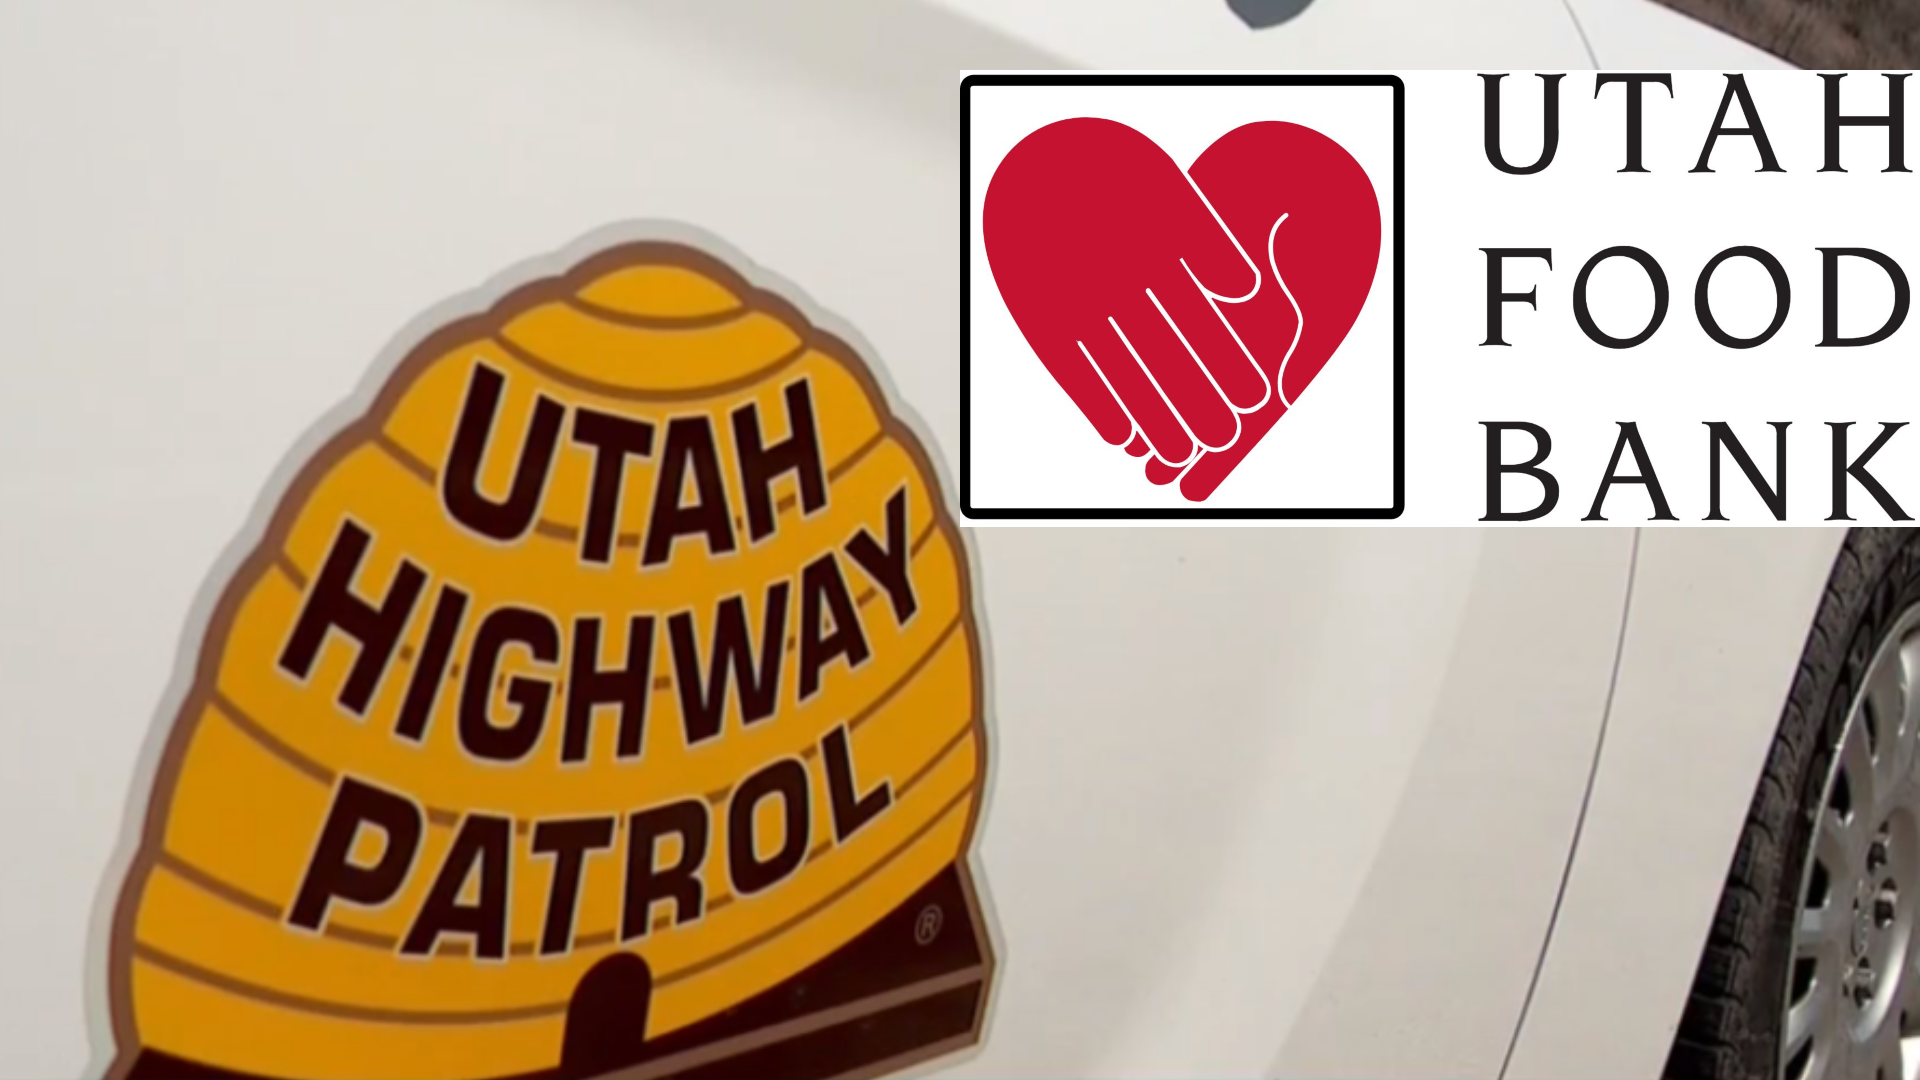 UHP hopes to 'fill the hive' in Utah Food Bank food drive. (KUTV)